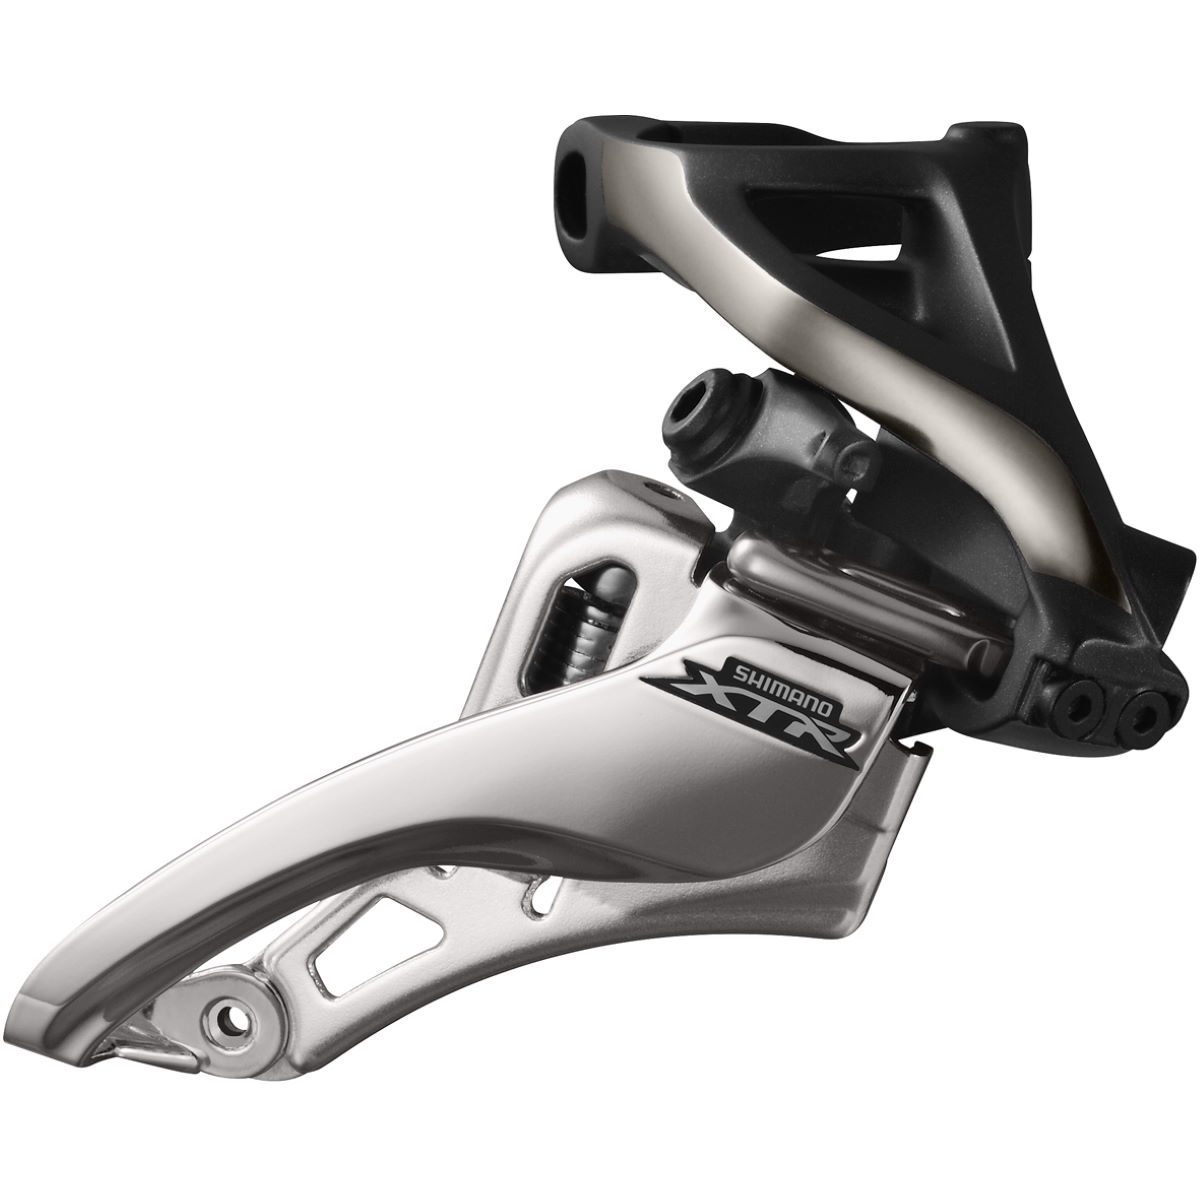 Shimano Xtr M9020 Side Pull Front Derailleur - H - High Clamp